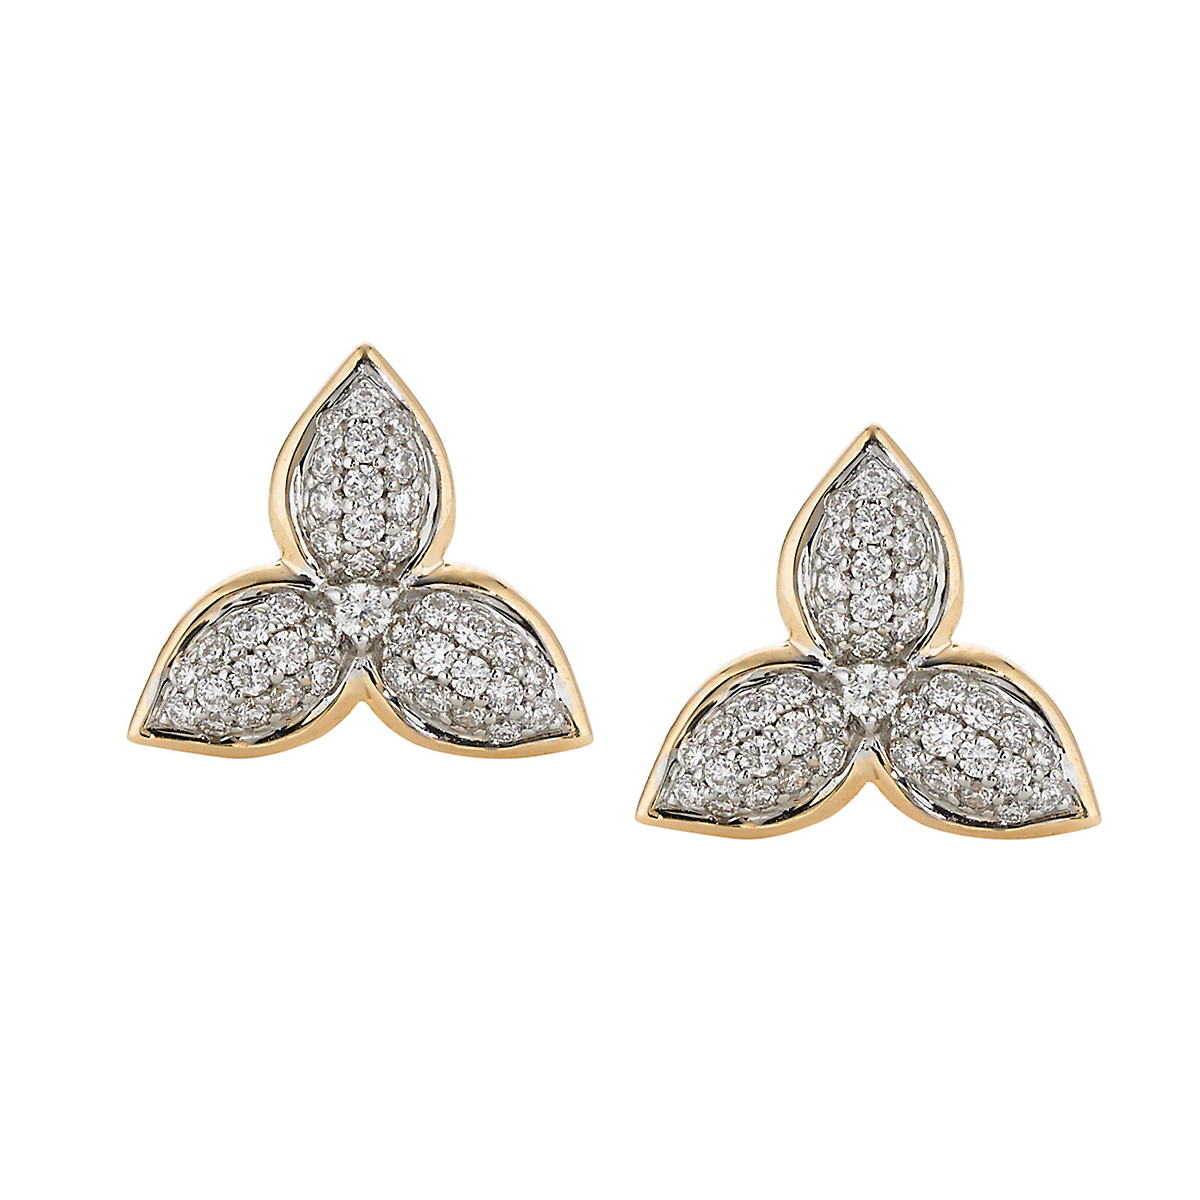 Elizabeth Showers Diamond Mini Mariposa Earrings